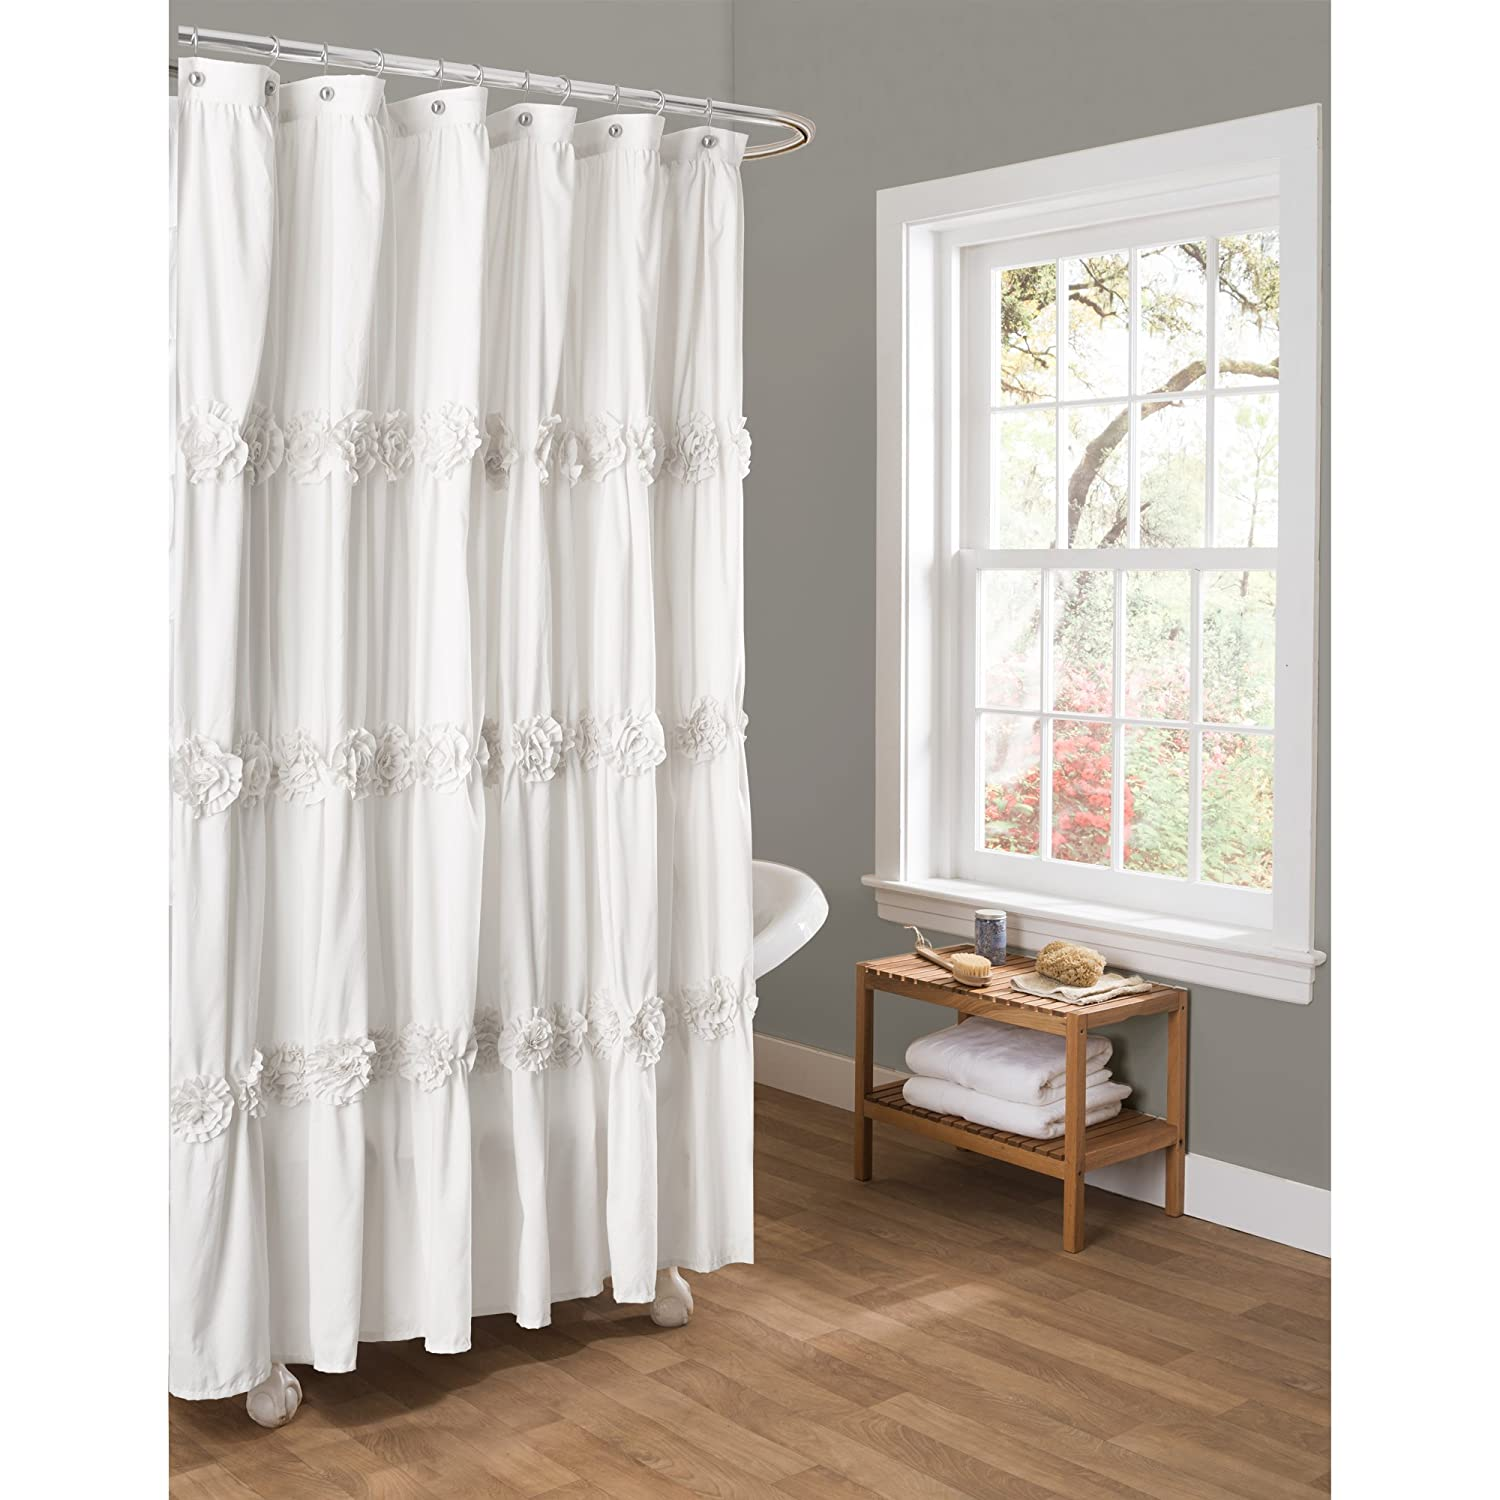 white shower curtain. Amazon.com: Lush Decor Darla Shower Curtain, 72 By 72-Inch, White: Home \u0026 Kitchen White Curtain